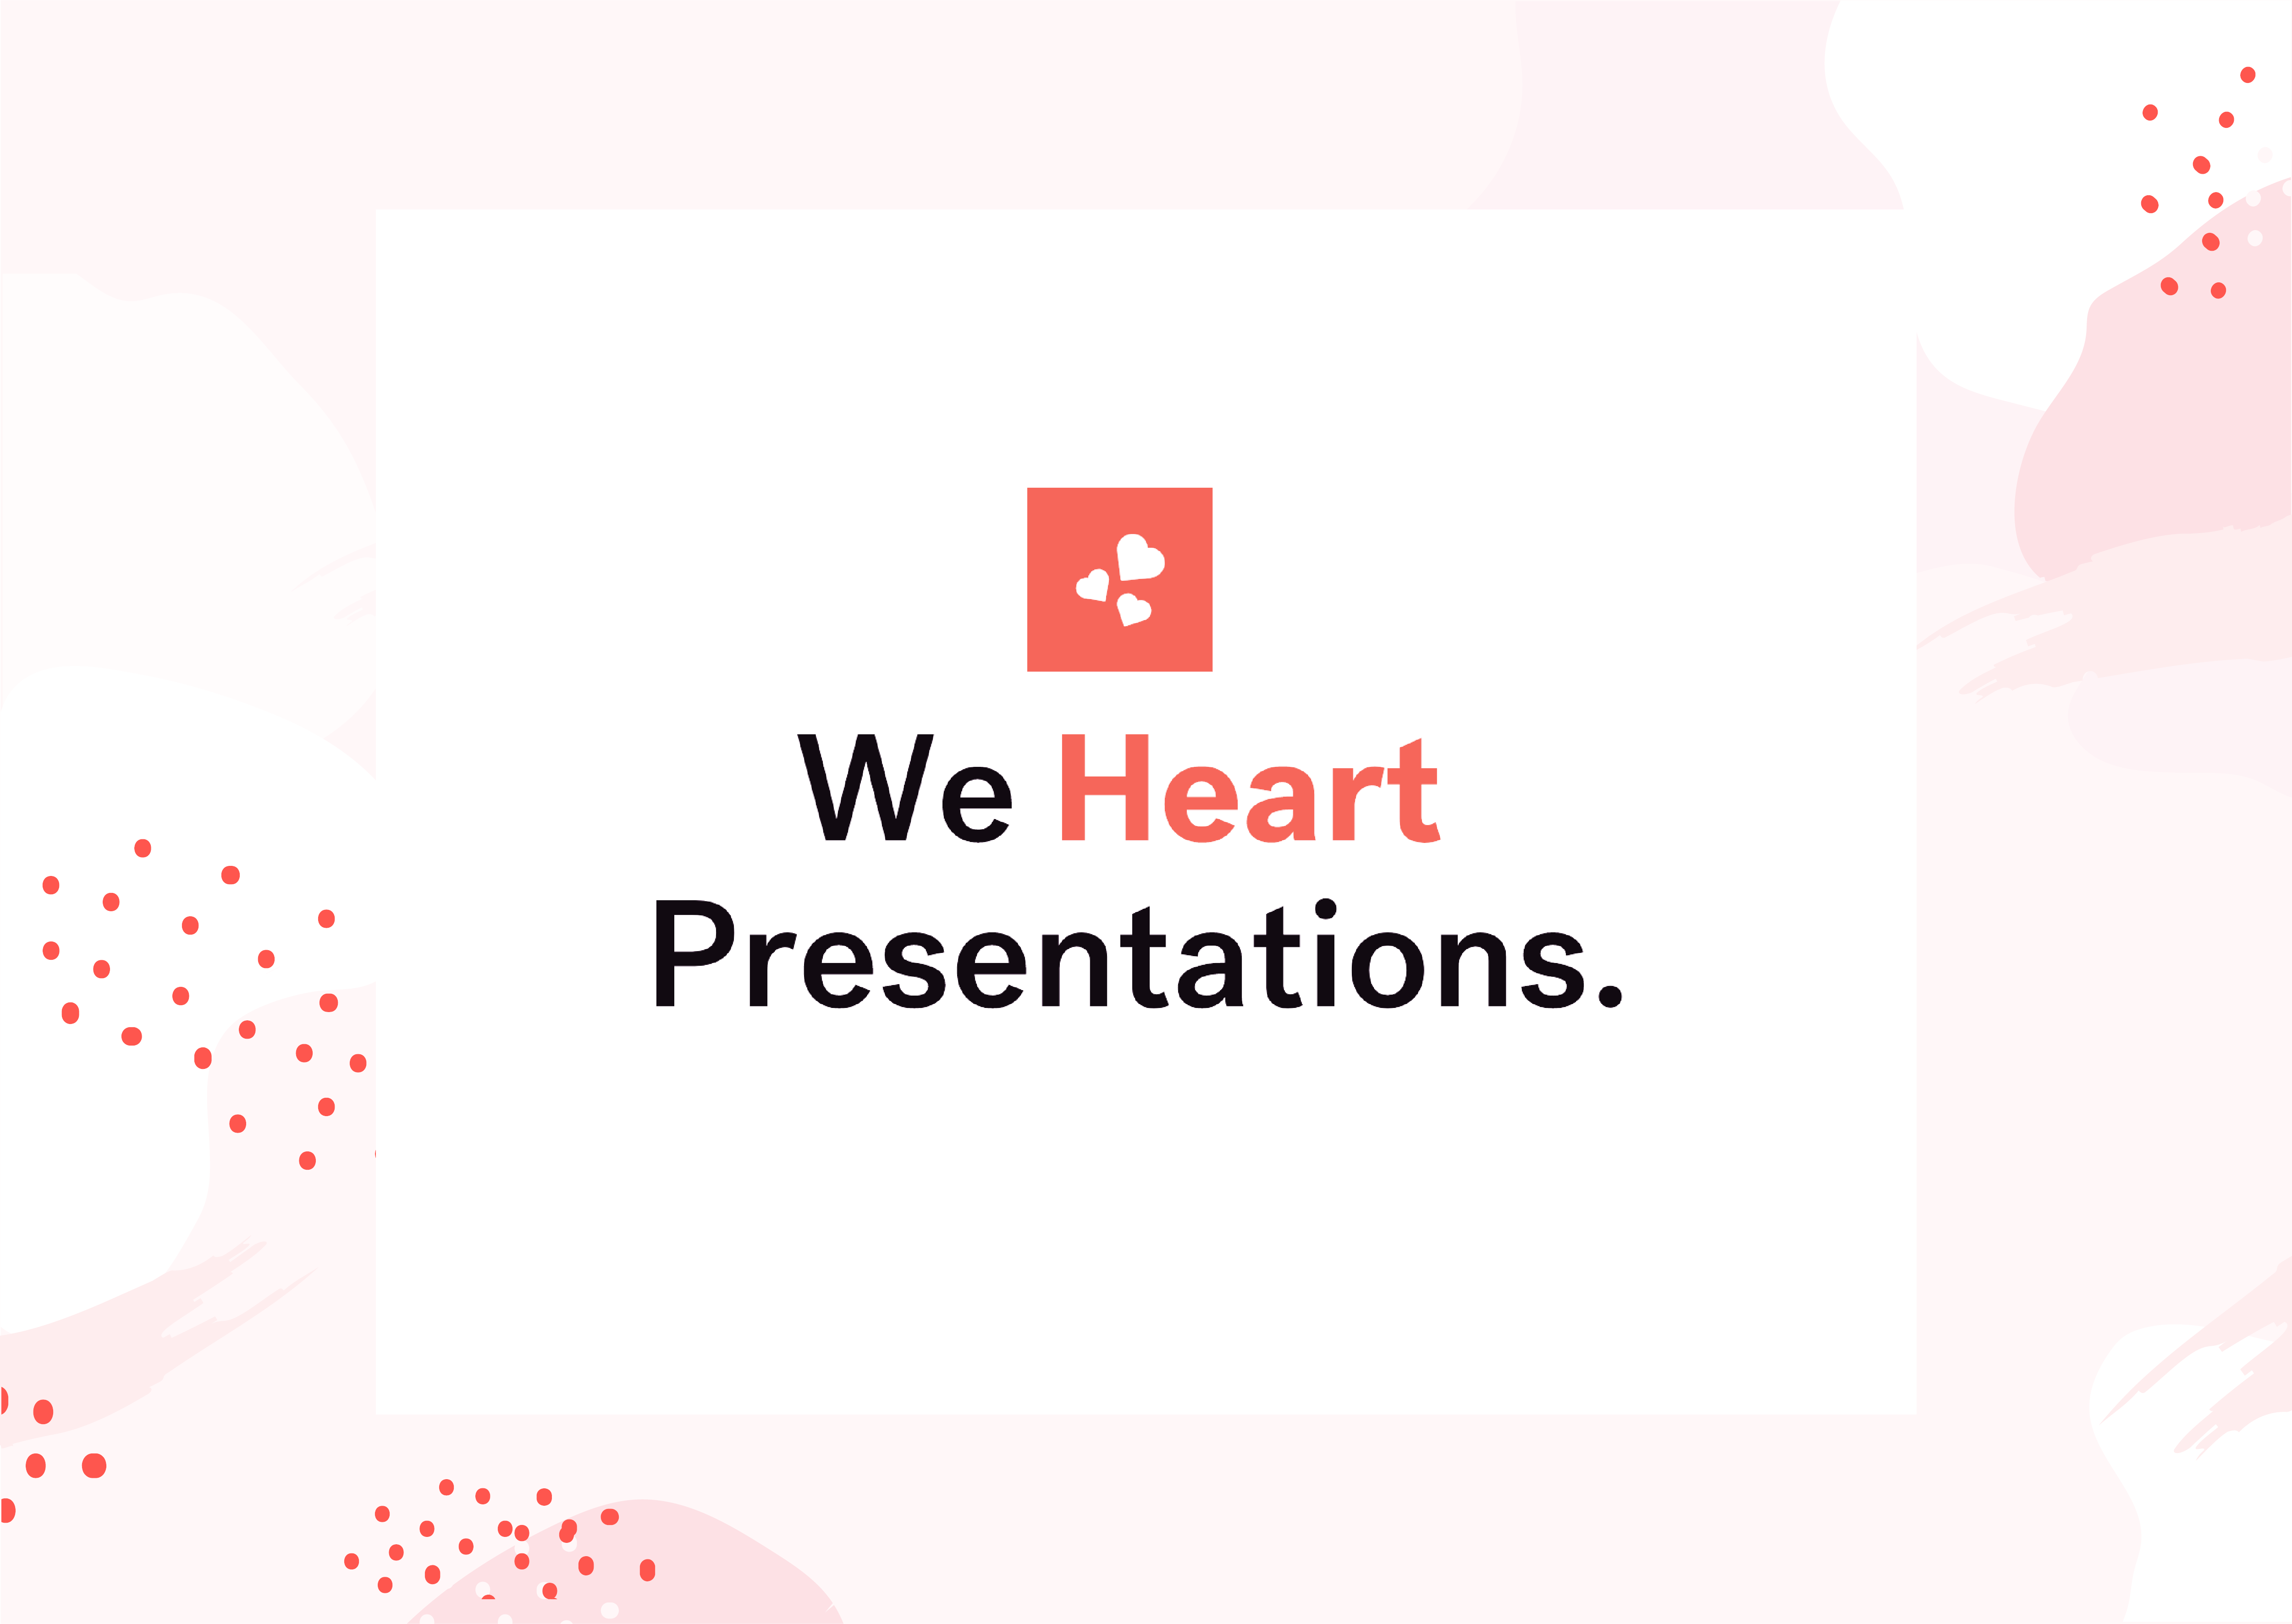 6 Presentation Design Features You'll Love